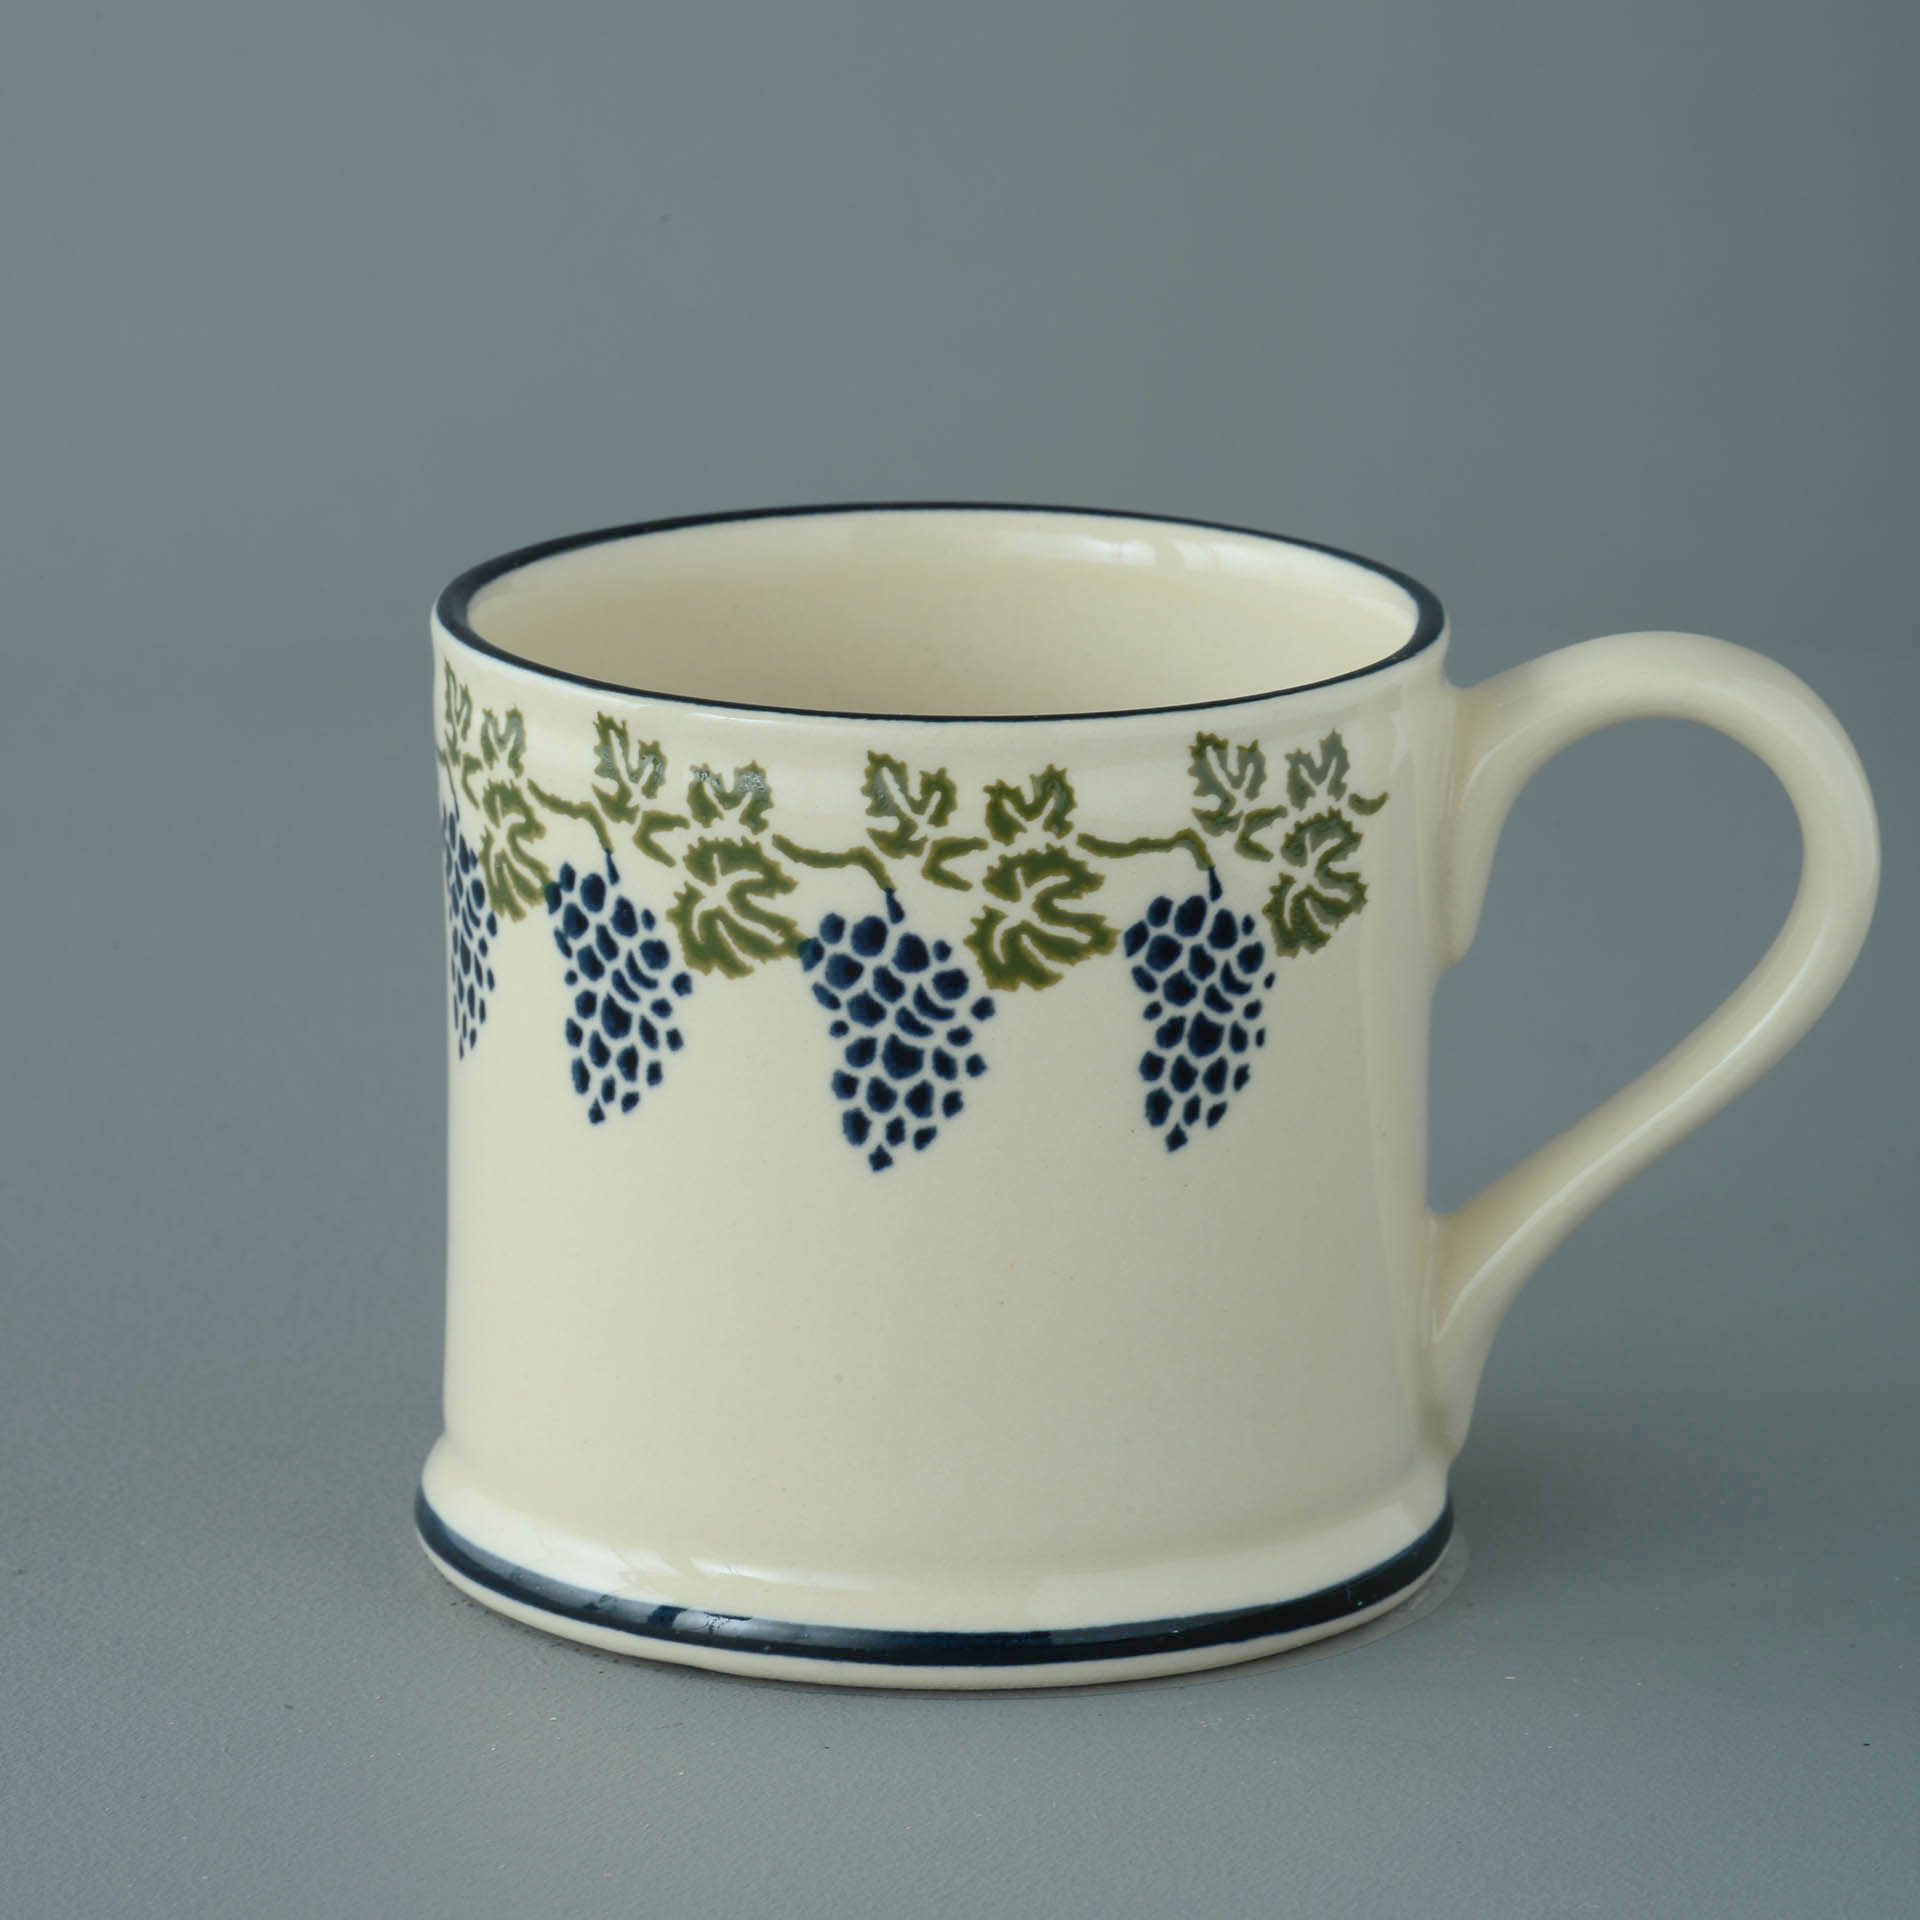 Grapes and Vine 250ml Large Mug 8 x 8.4cm